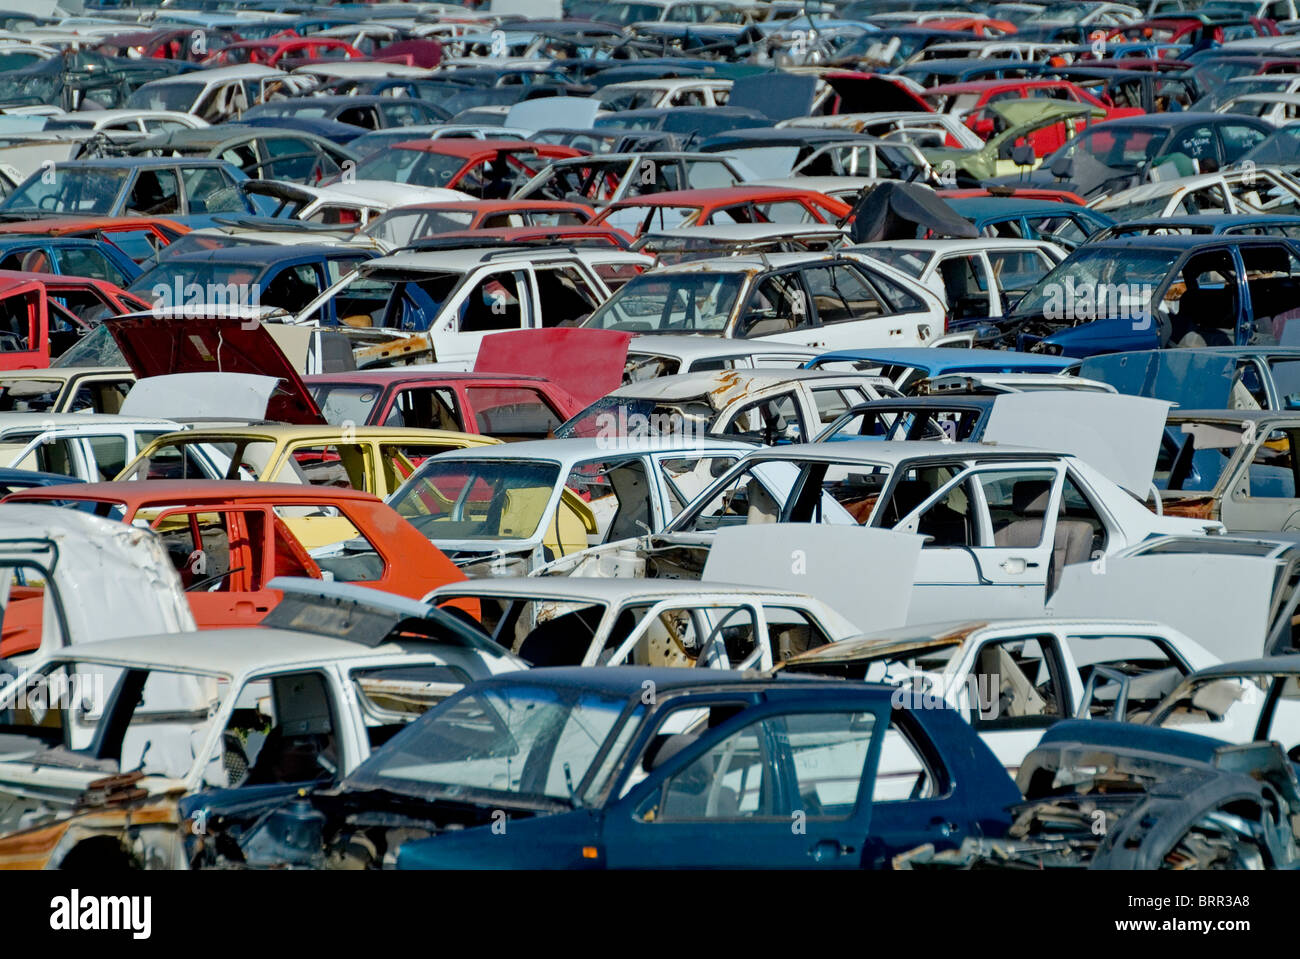 A scrap yard for motor vehicles - Stock Image